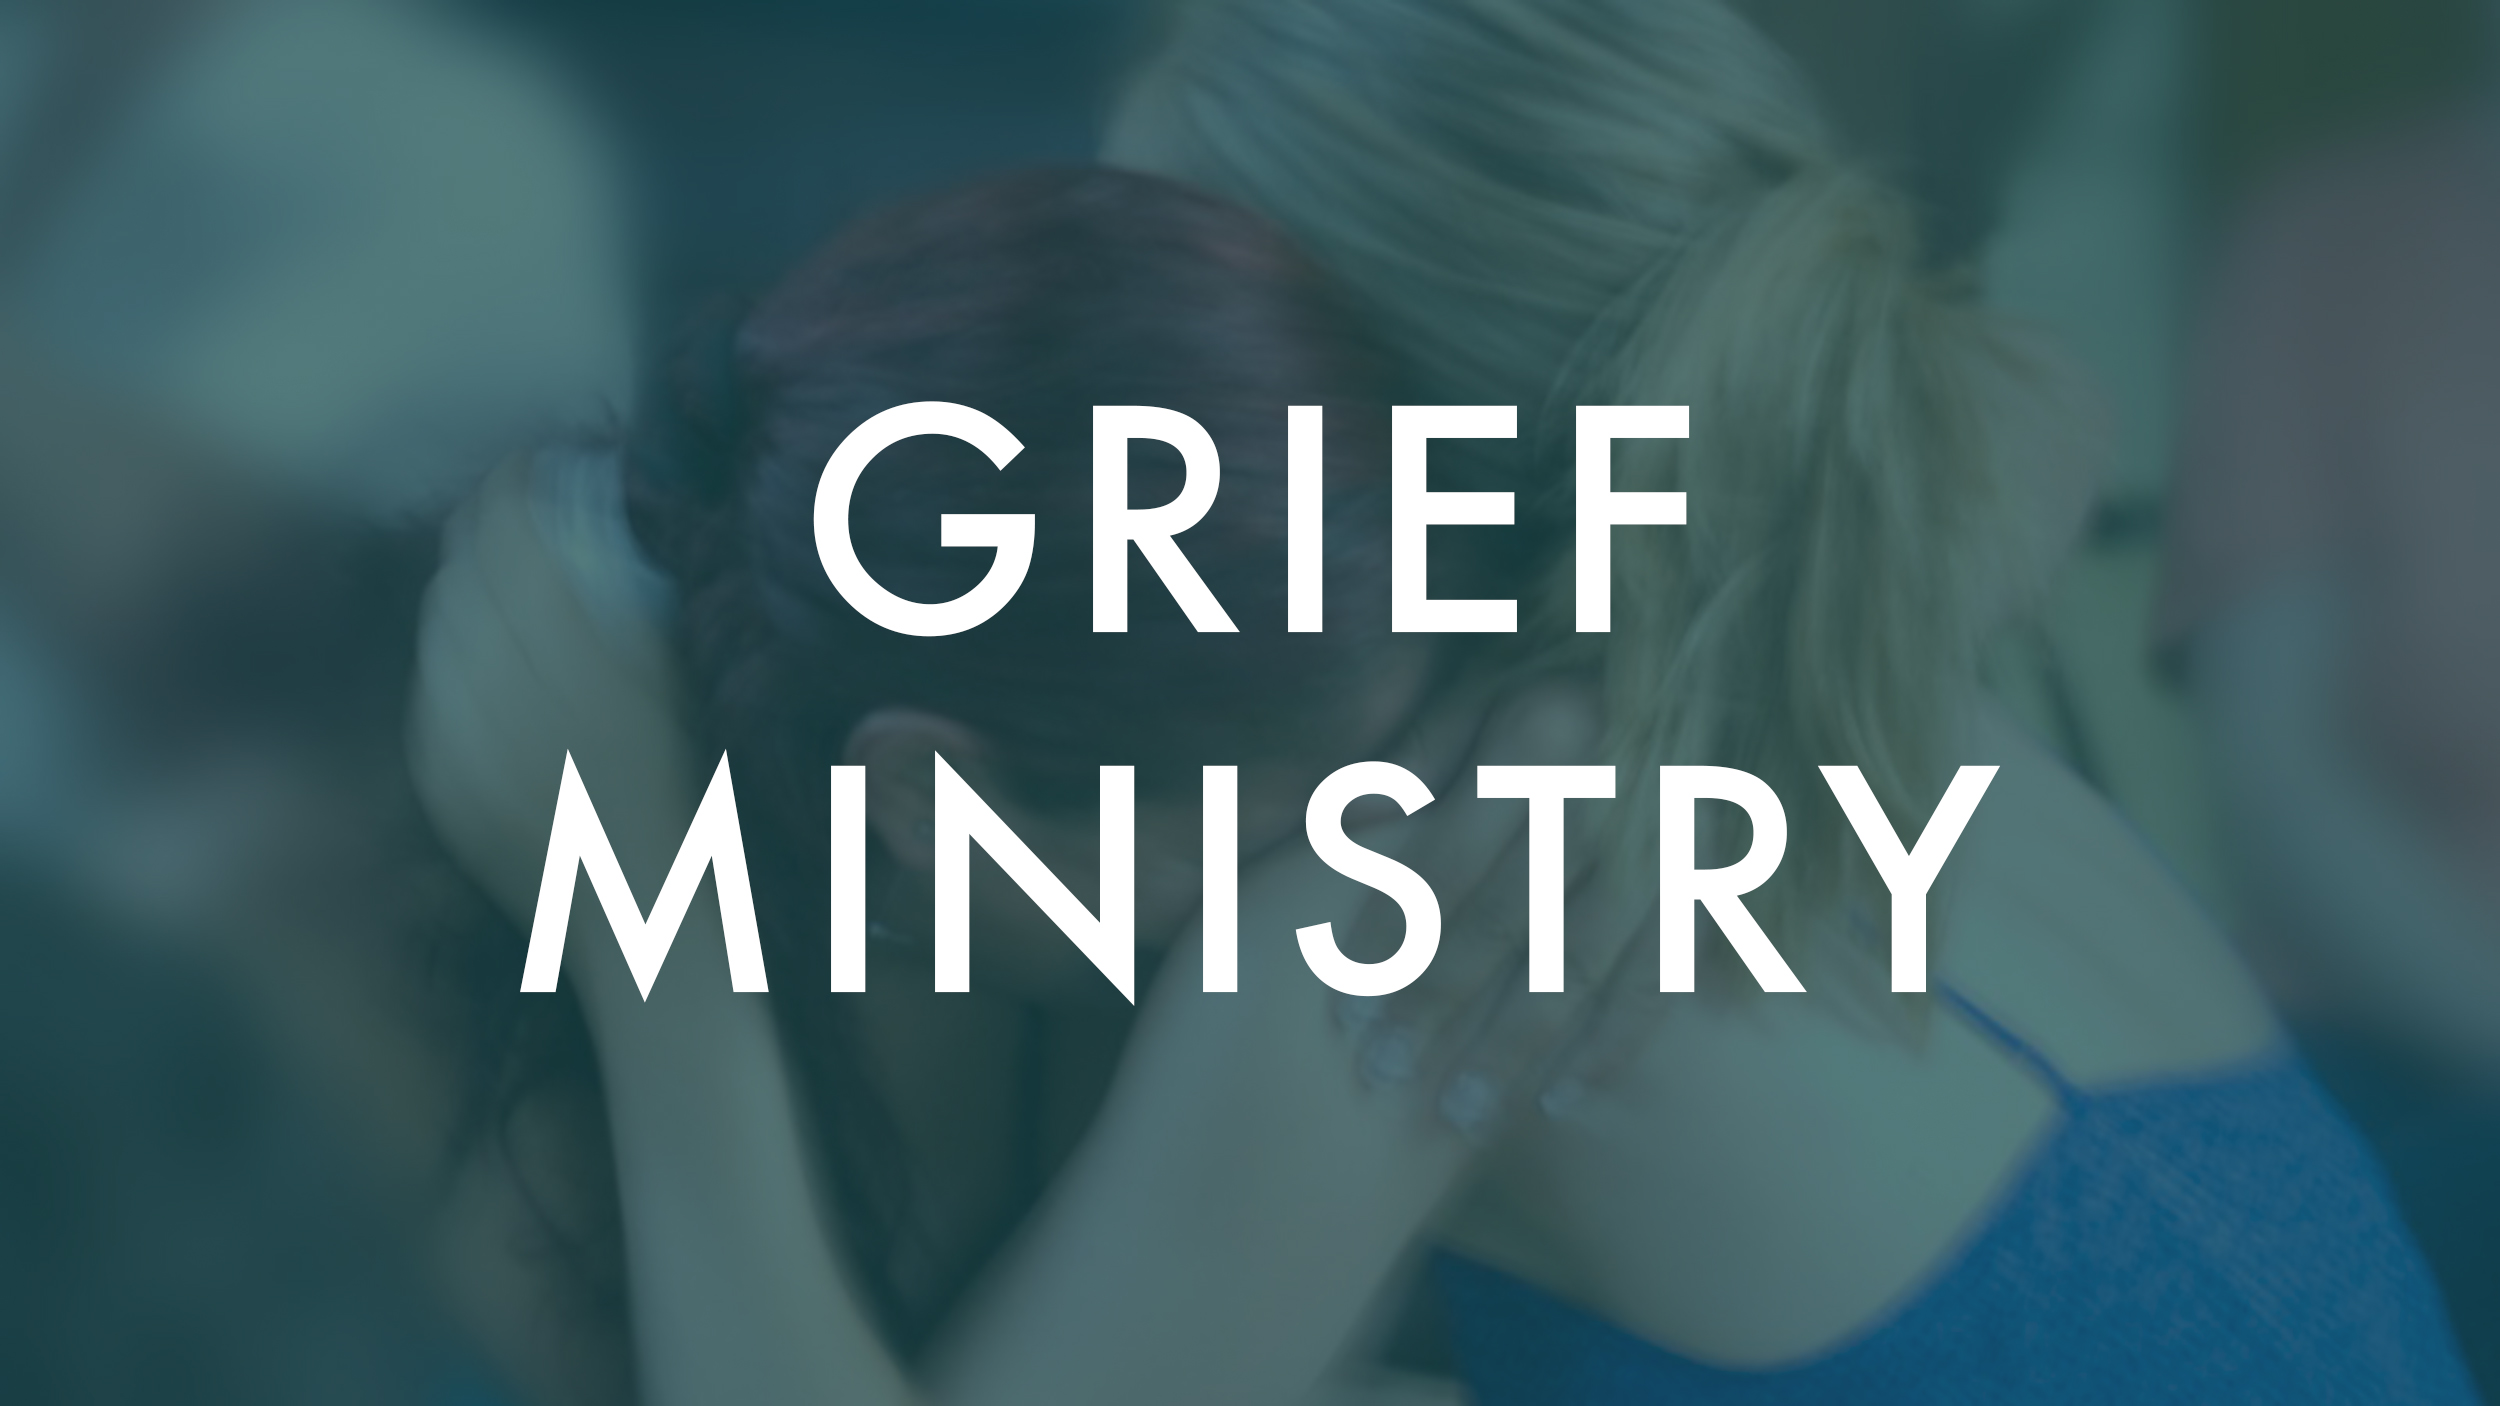 Grief Ministry.jpg